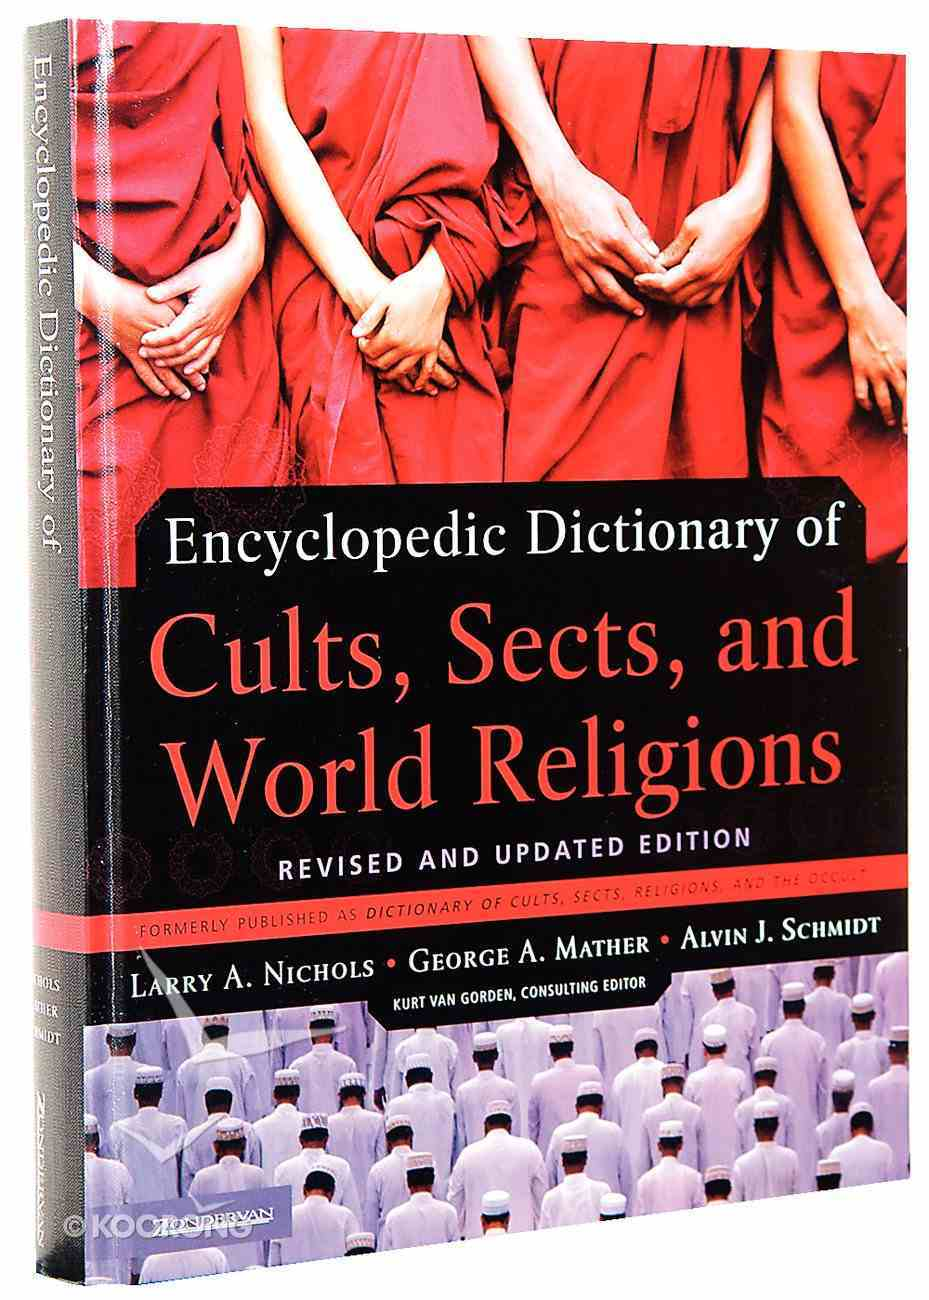 Encyclopedic Dictionary of Cults, Sects, and World Religions Paperback